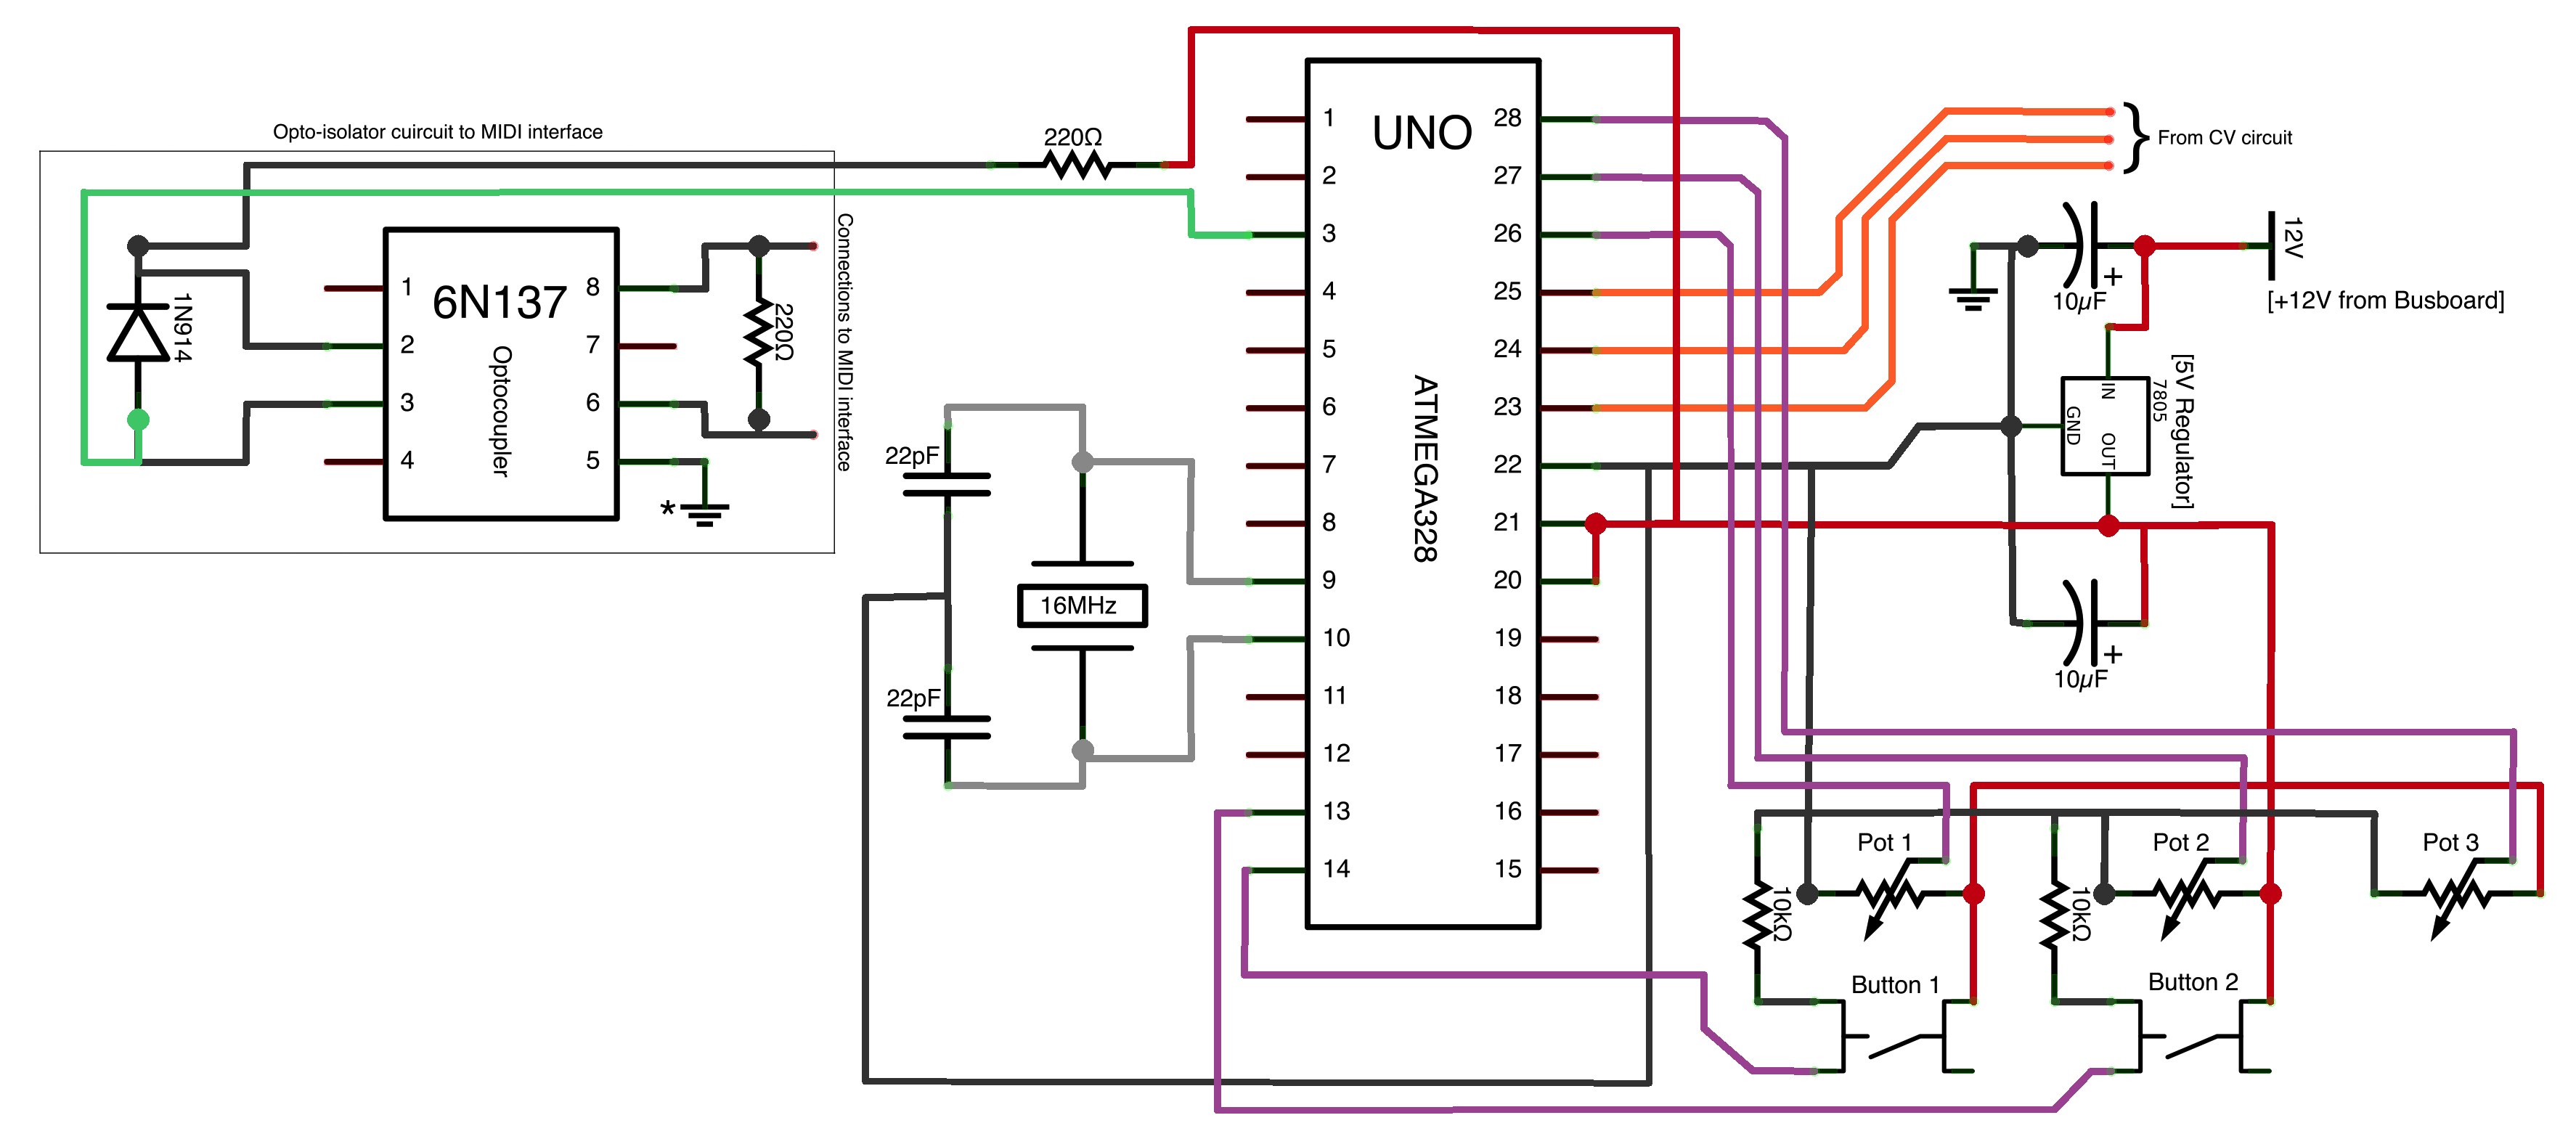 Csound Journal Voltage Amplifier Circuit Using Op Amp Control To Arduino